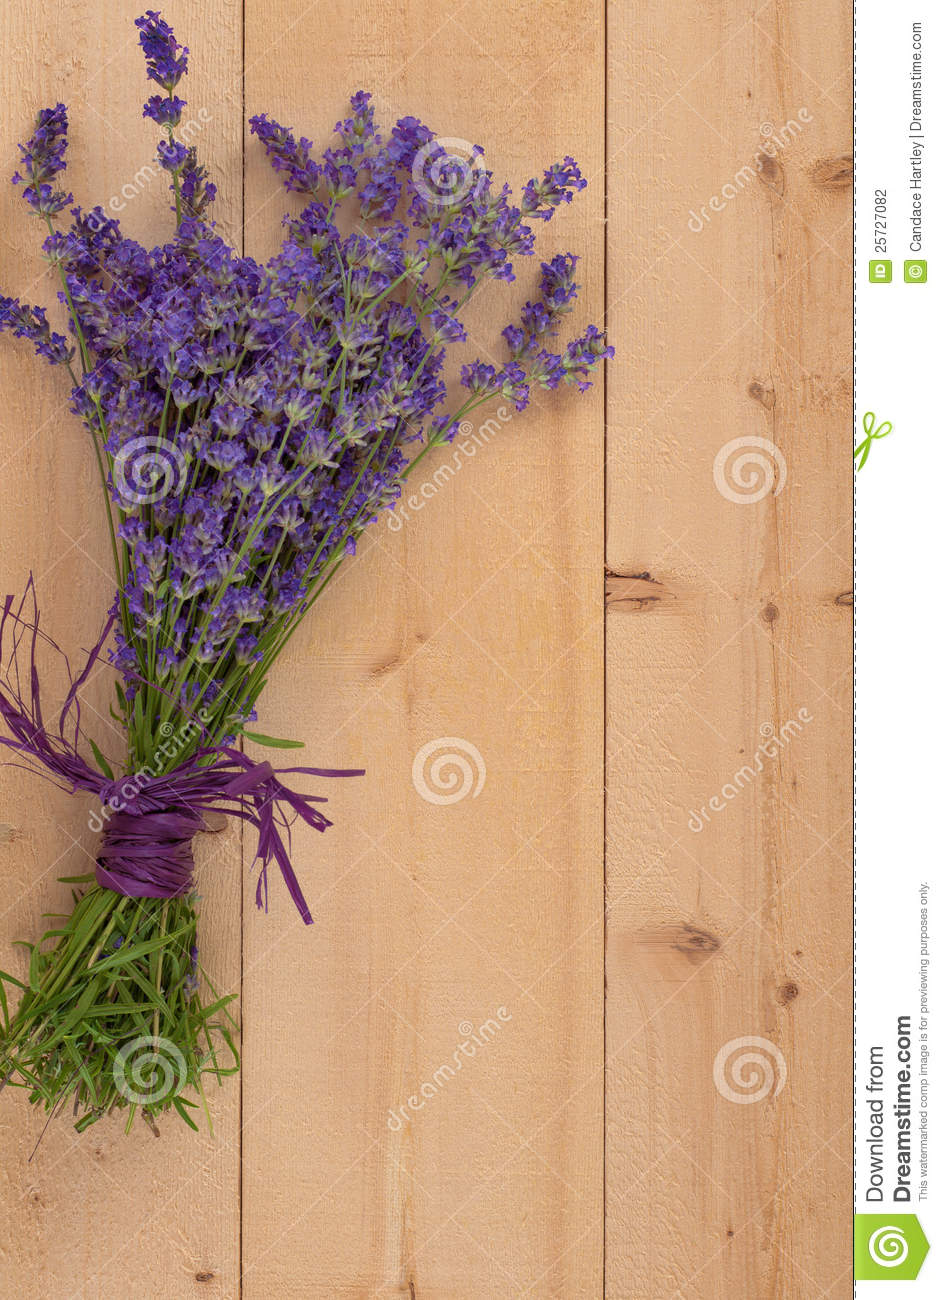 Bouquet of Lavender on Wood